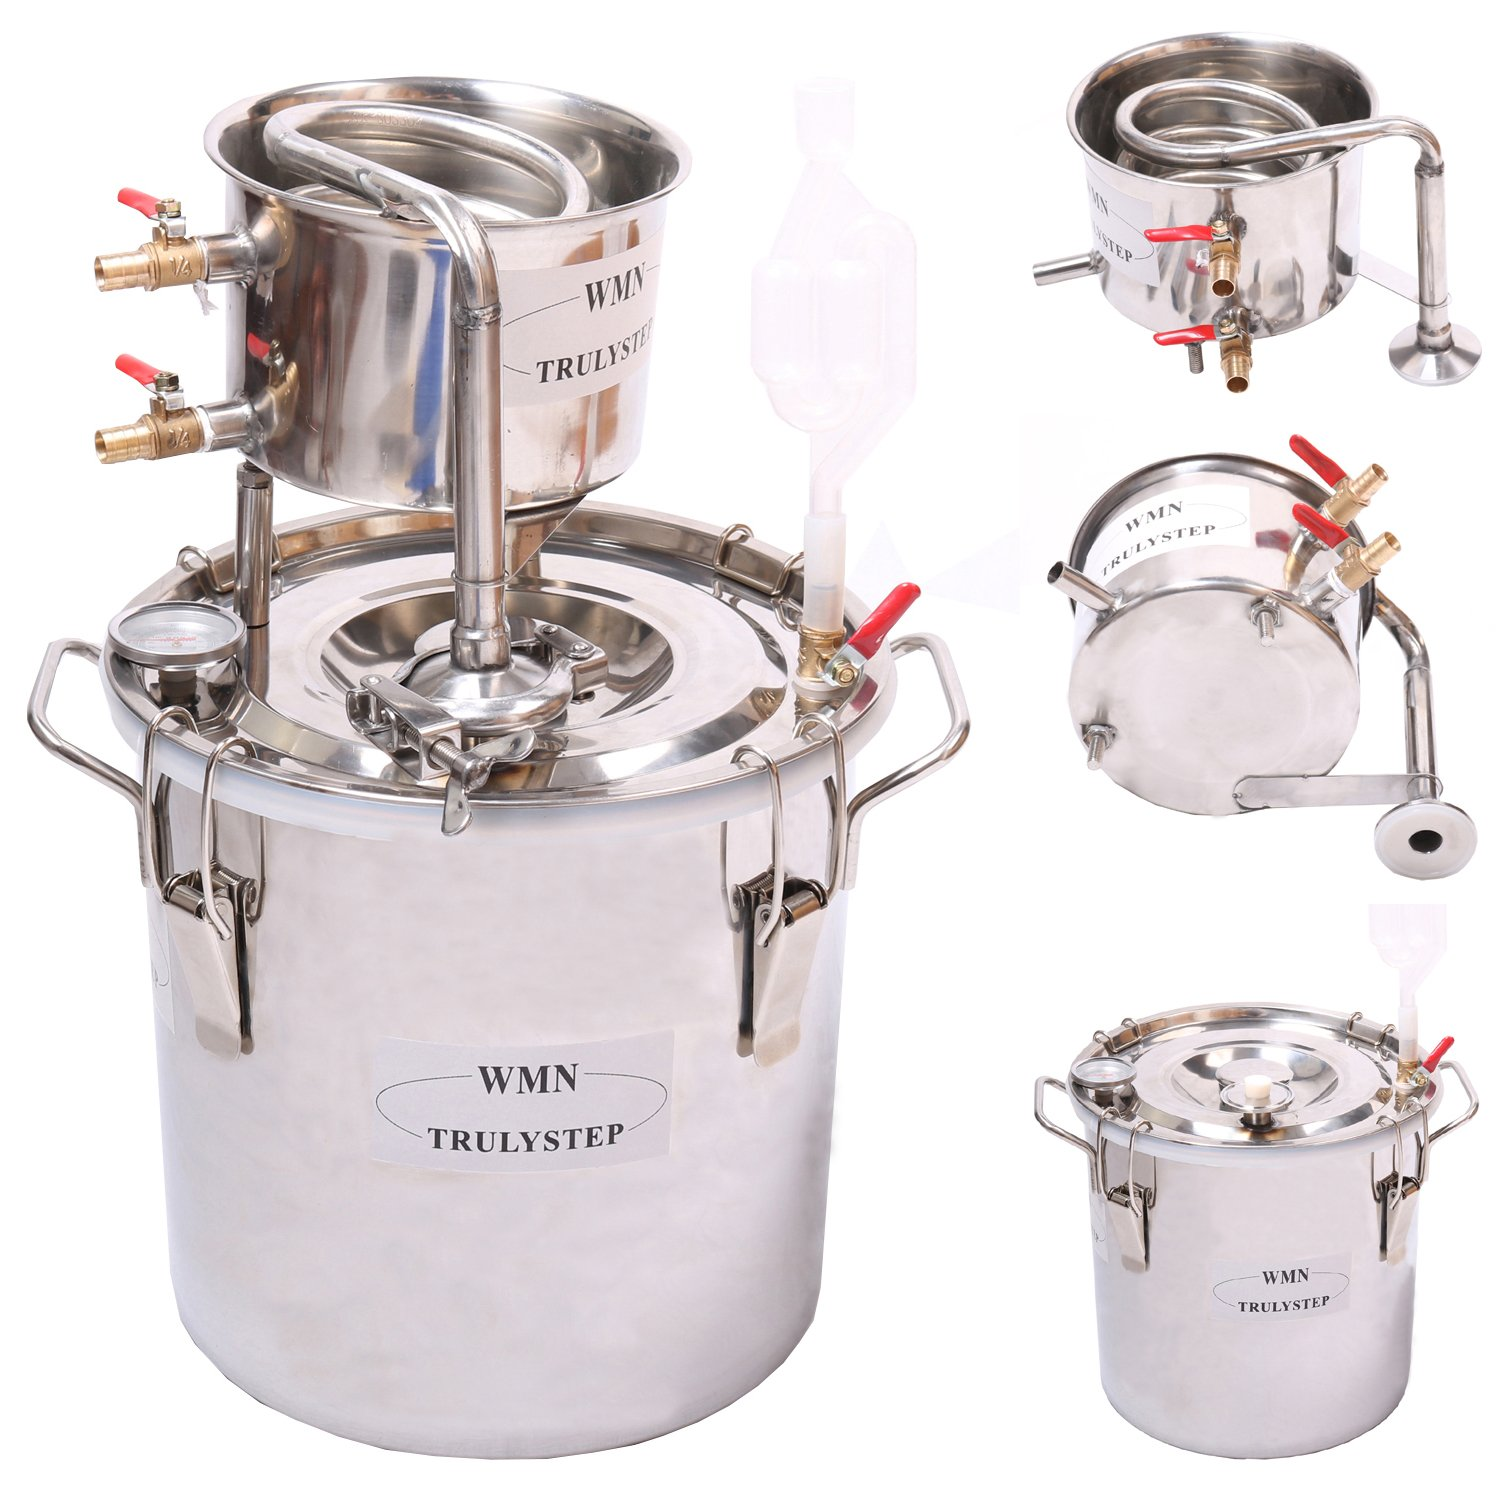 DIY New 5 Gal 20 Litres Home Alcohol Wine Moonshine Ethanol Still Spirits Stainless Boiler Water Brewing Distiller Kit Moonshine Stills by QHC